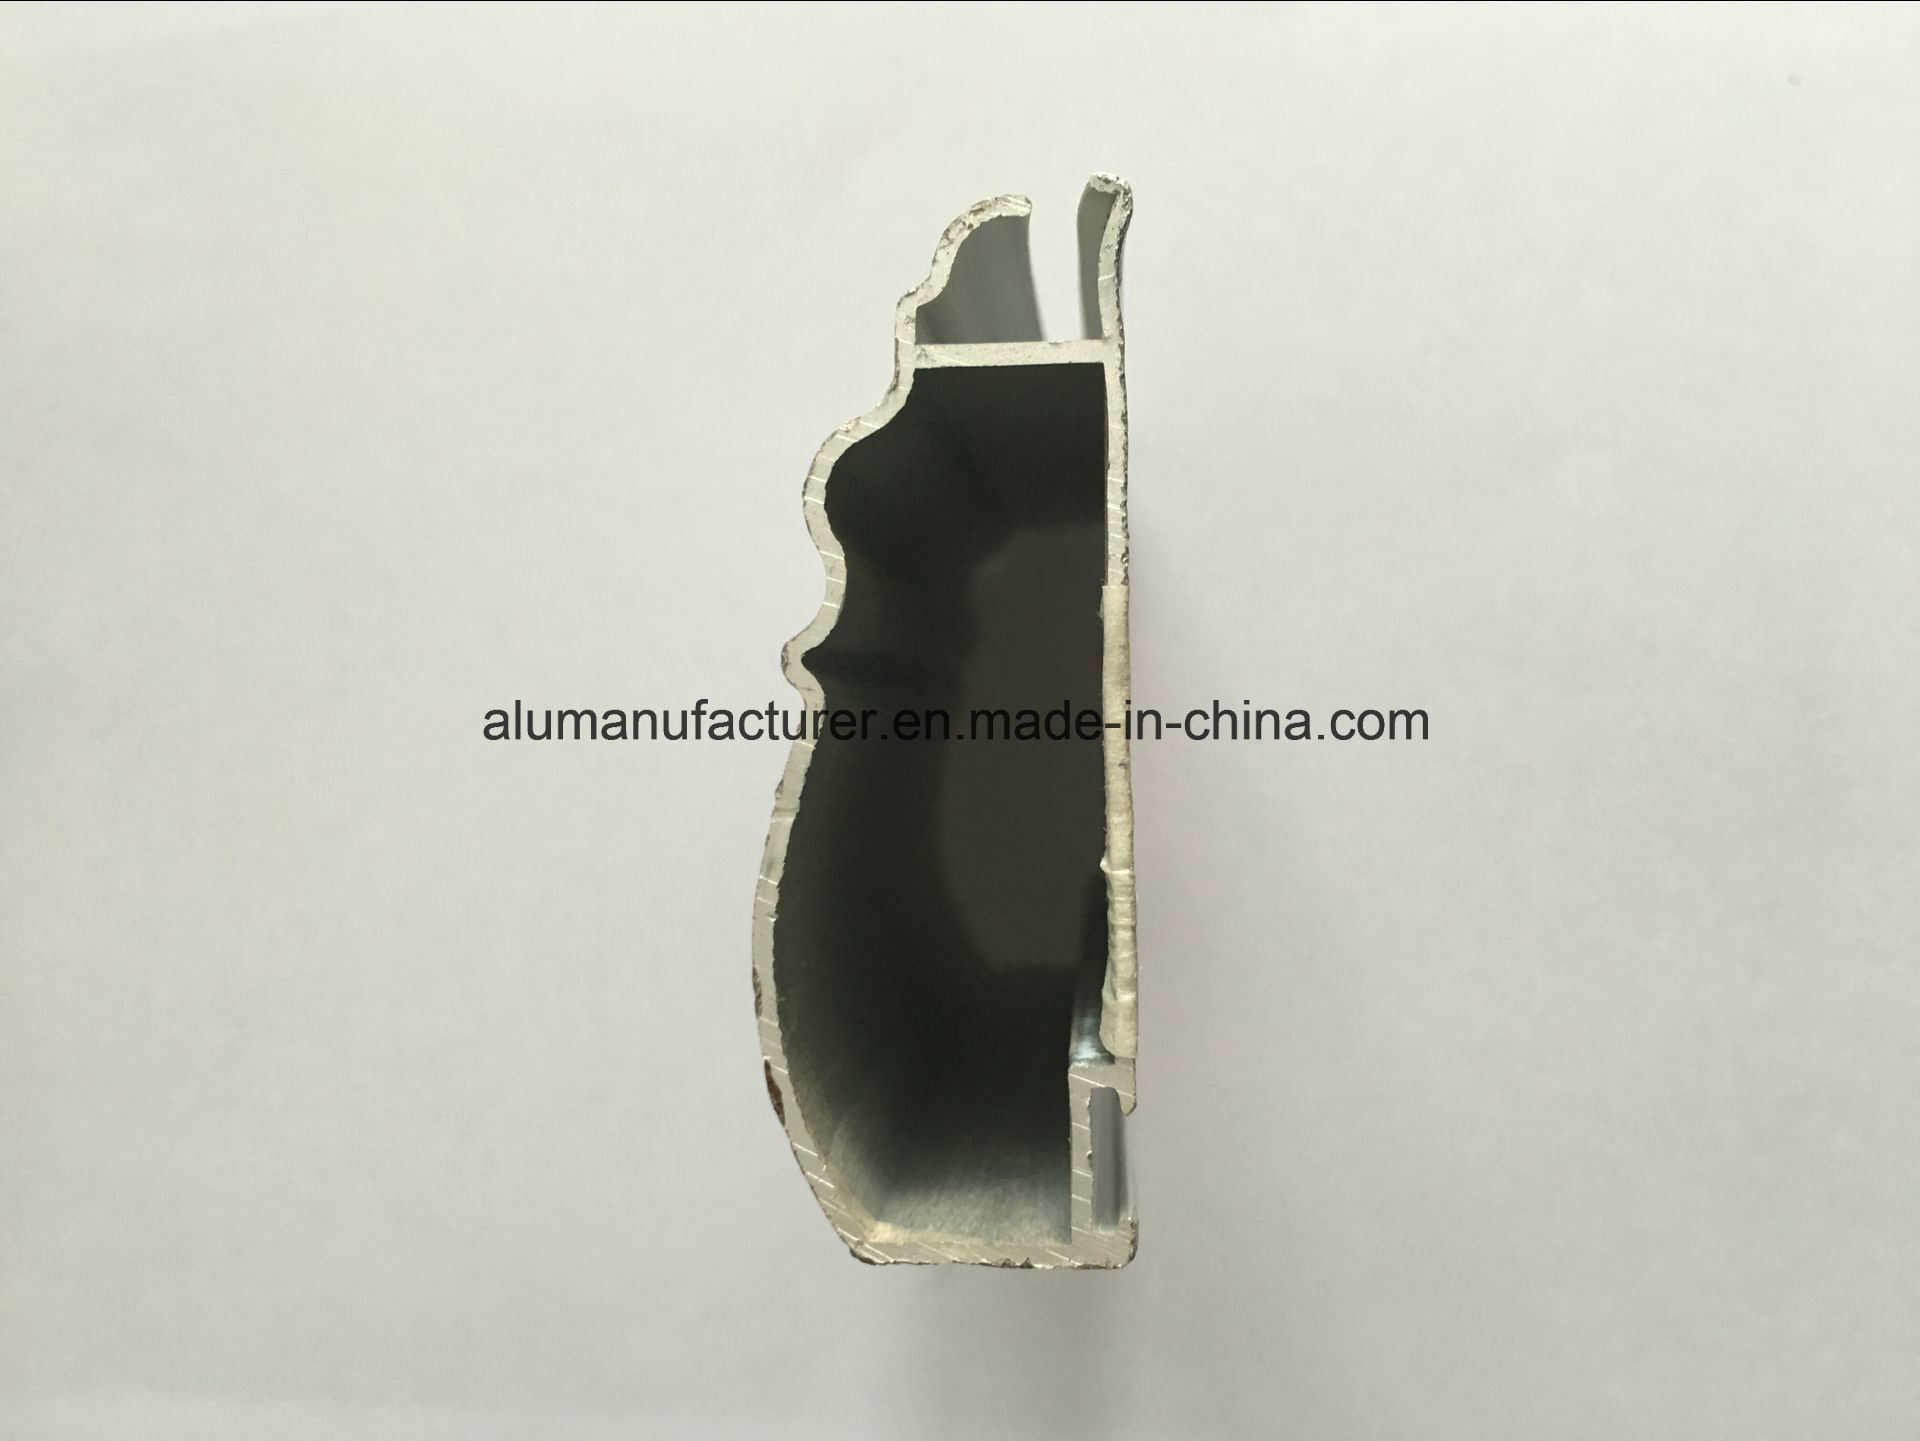 Liberia Aluminium Alloy Extrusion Profile for Door and Window